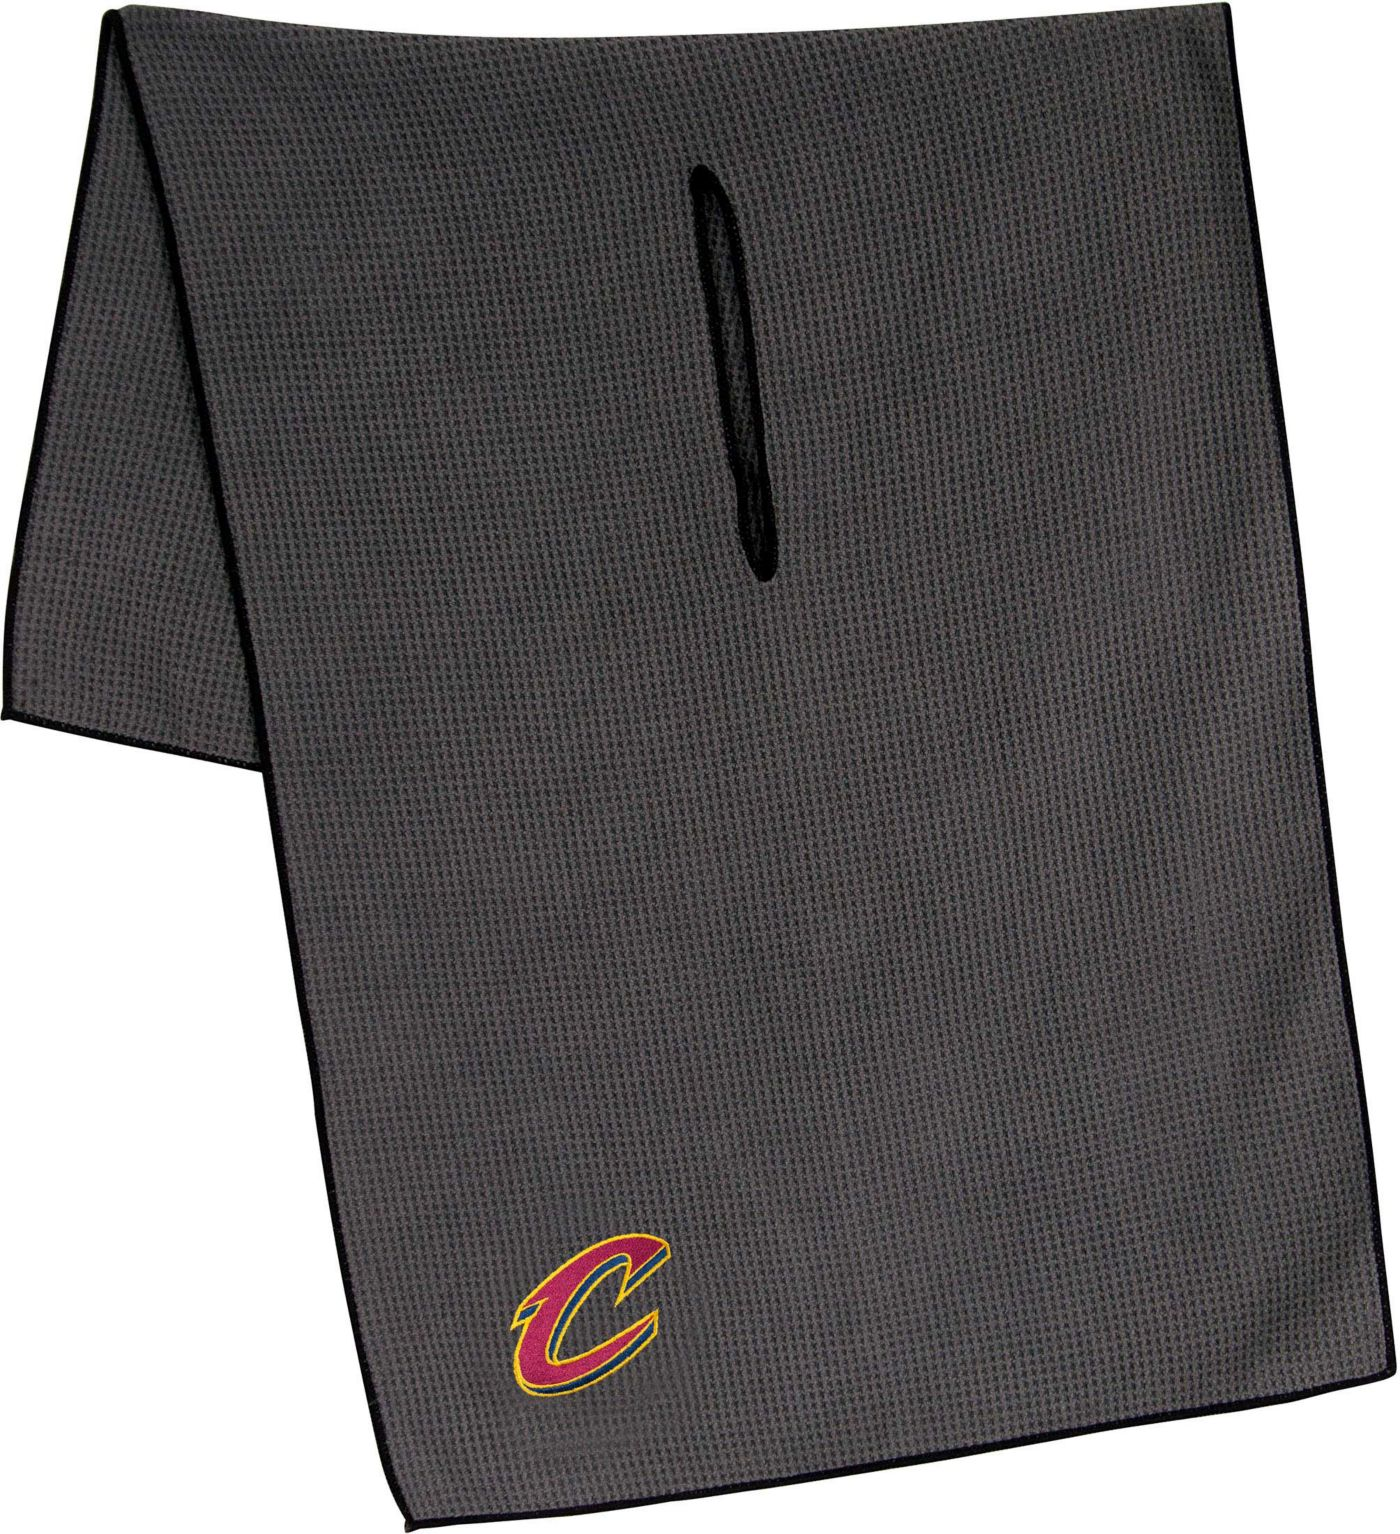 "Team Effort Cleveland Cavaliers 19"" x 41"" Microfiber Golf Towel"